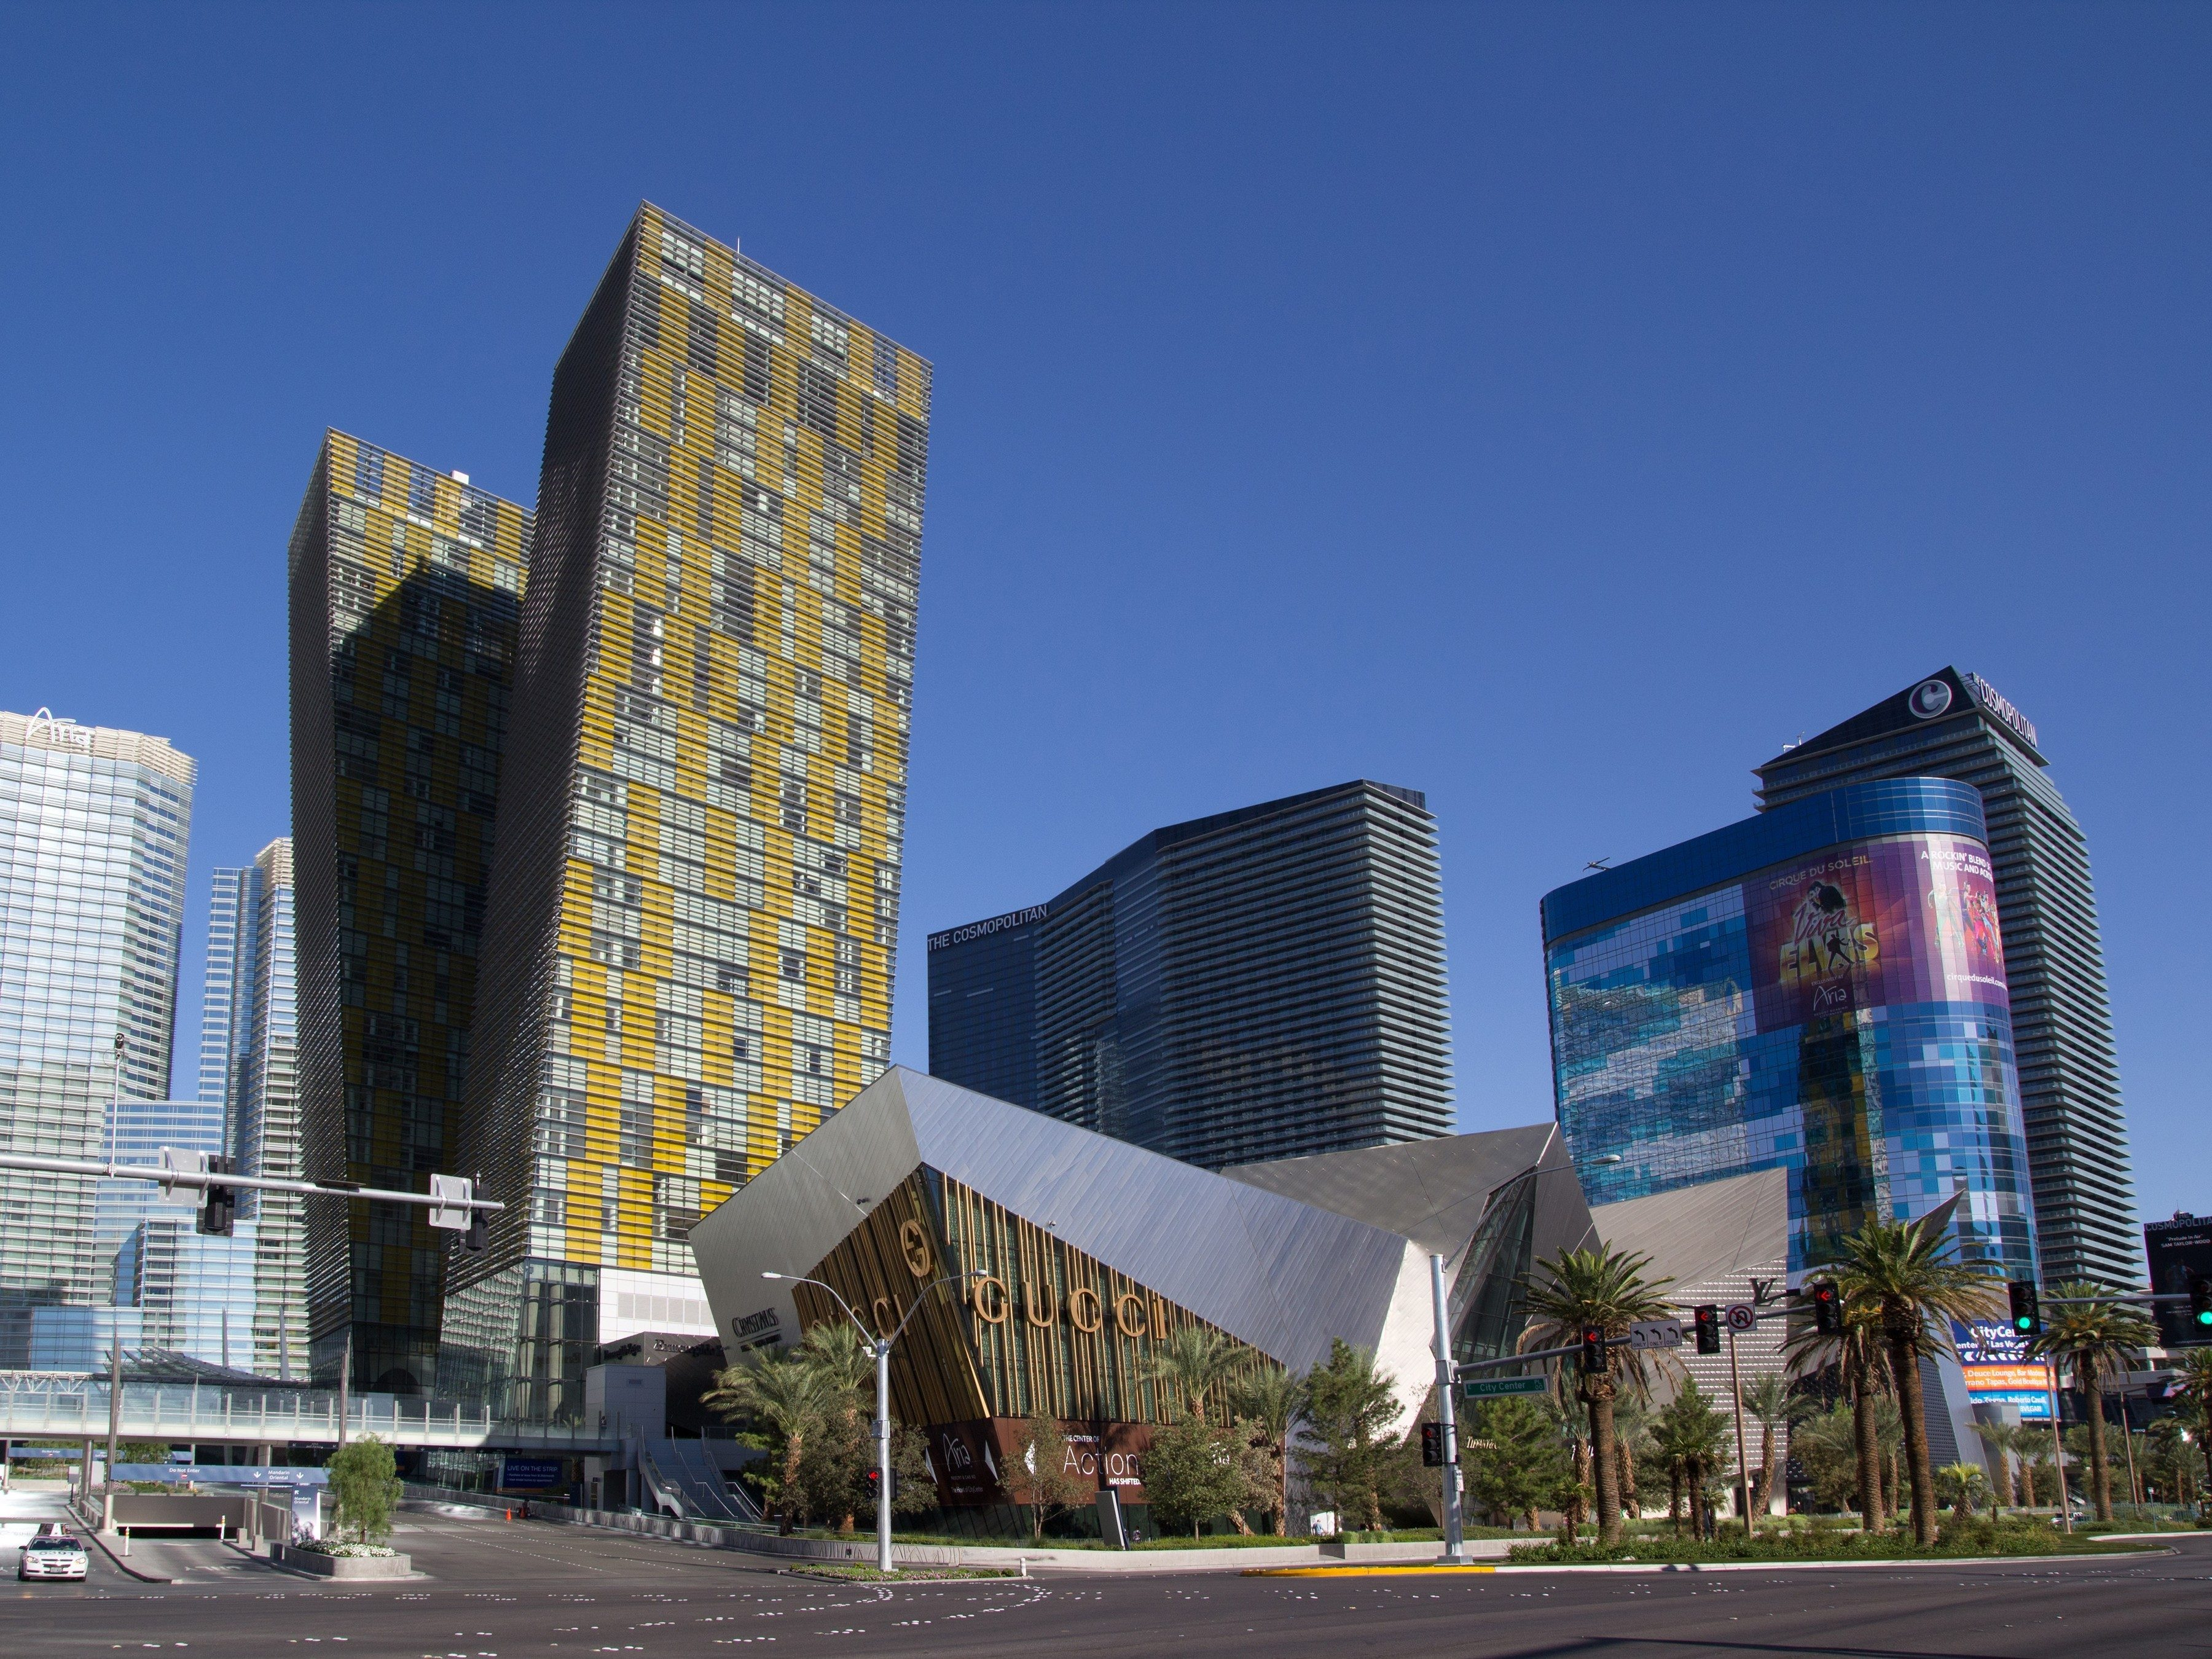 10 Amazing Reasons to Visit Las Vegas: City Center